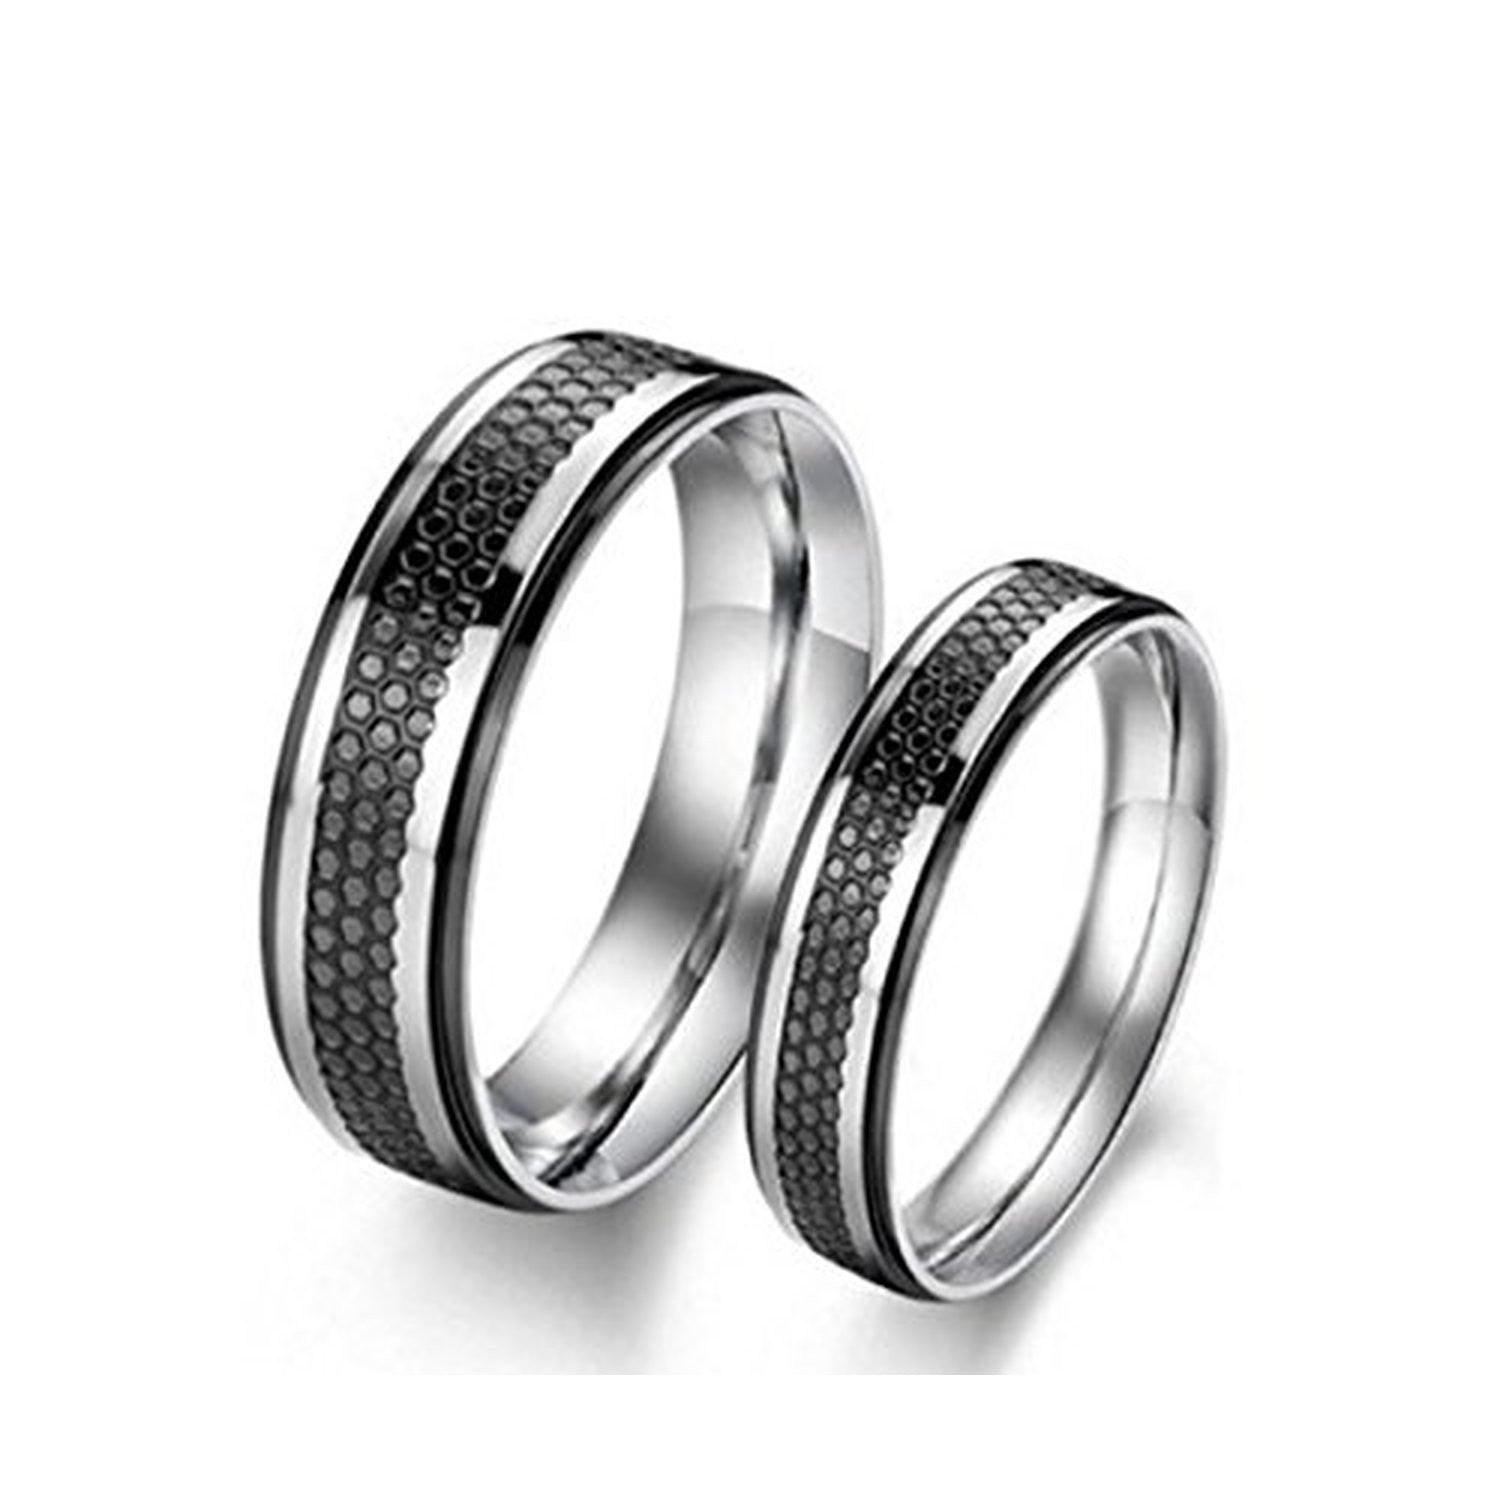 him designs will of plated size end men rings titanium styles for best engagement king rose black guy vhzpwll unique comfort com women silver square mens and gold with plain fit tungsten full rustic blue bands designer custom wedding diamond metal band brushed set ring high